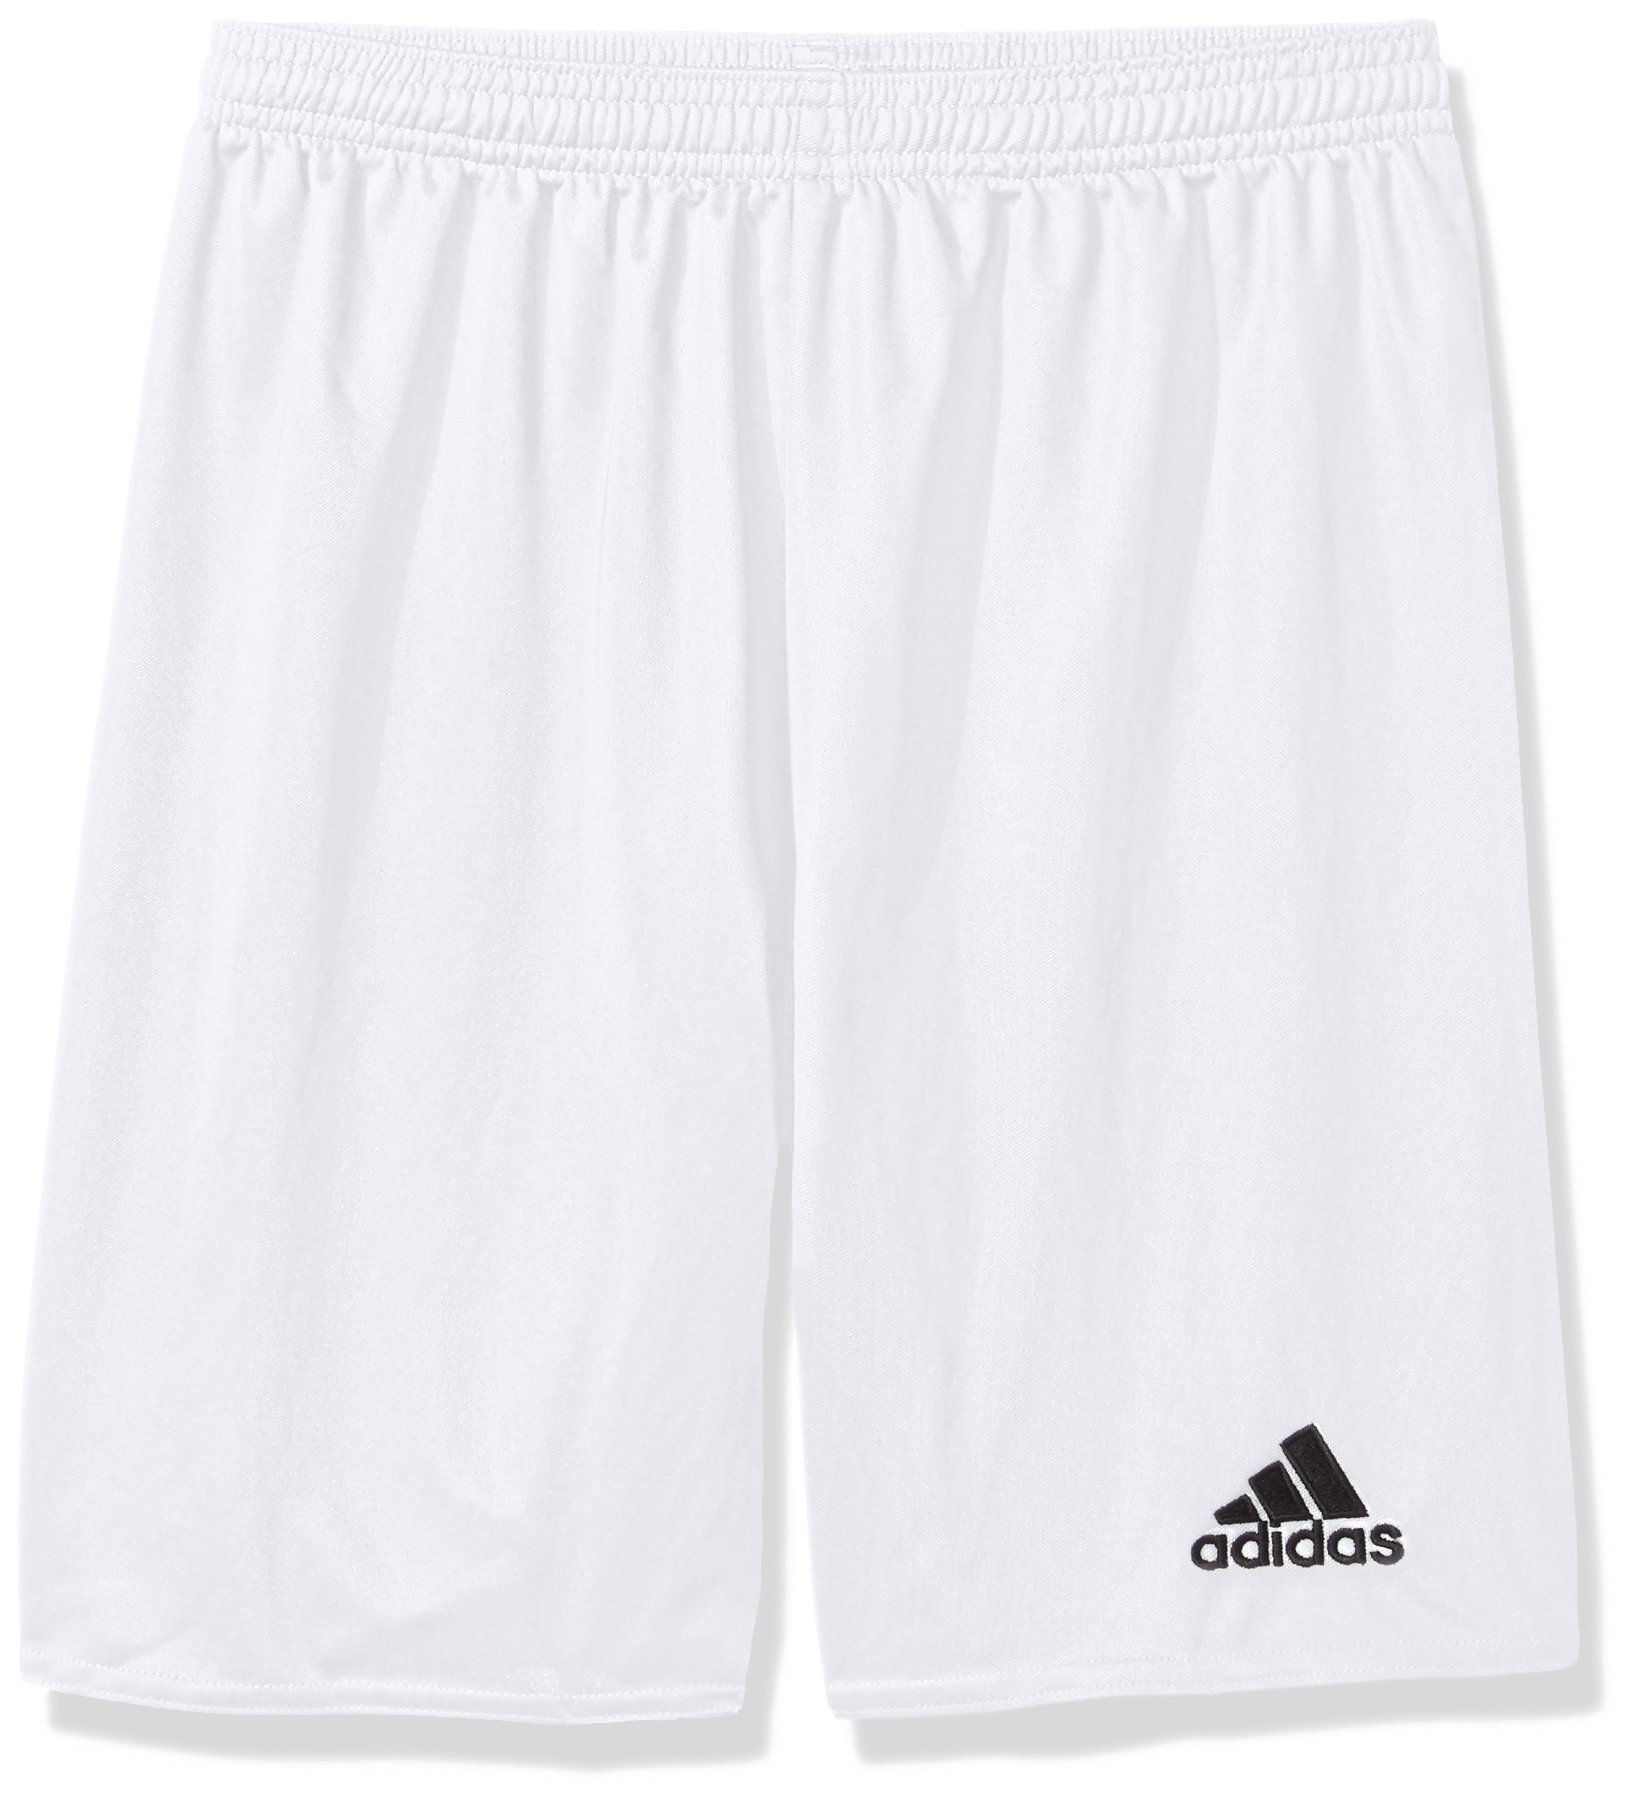 adidas Youth Parma 16 Shorts, White/Black, X-Large